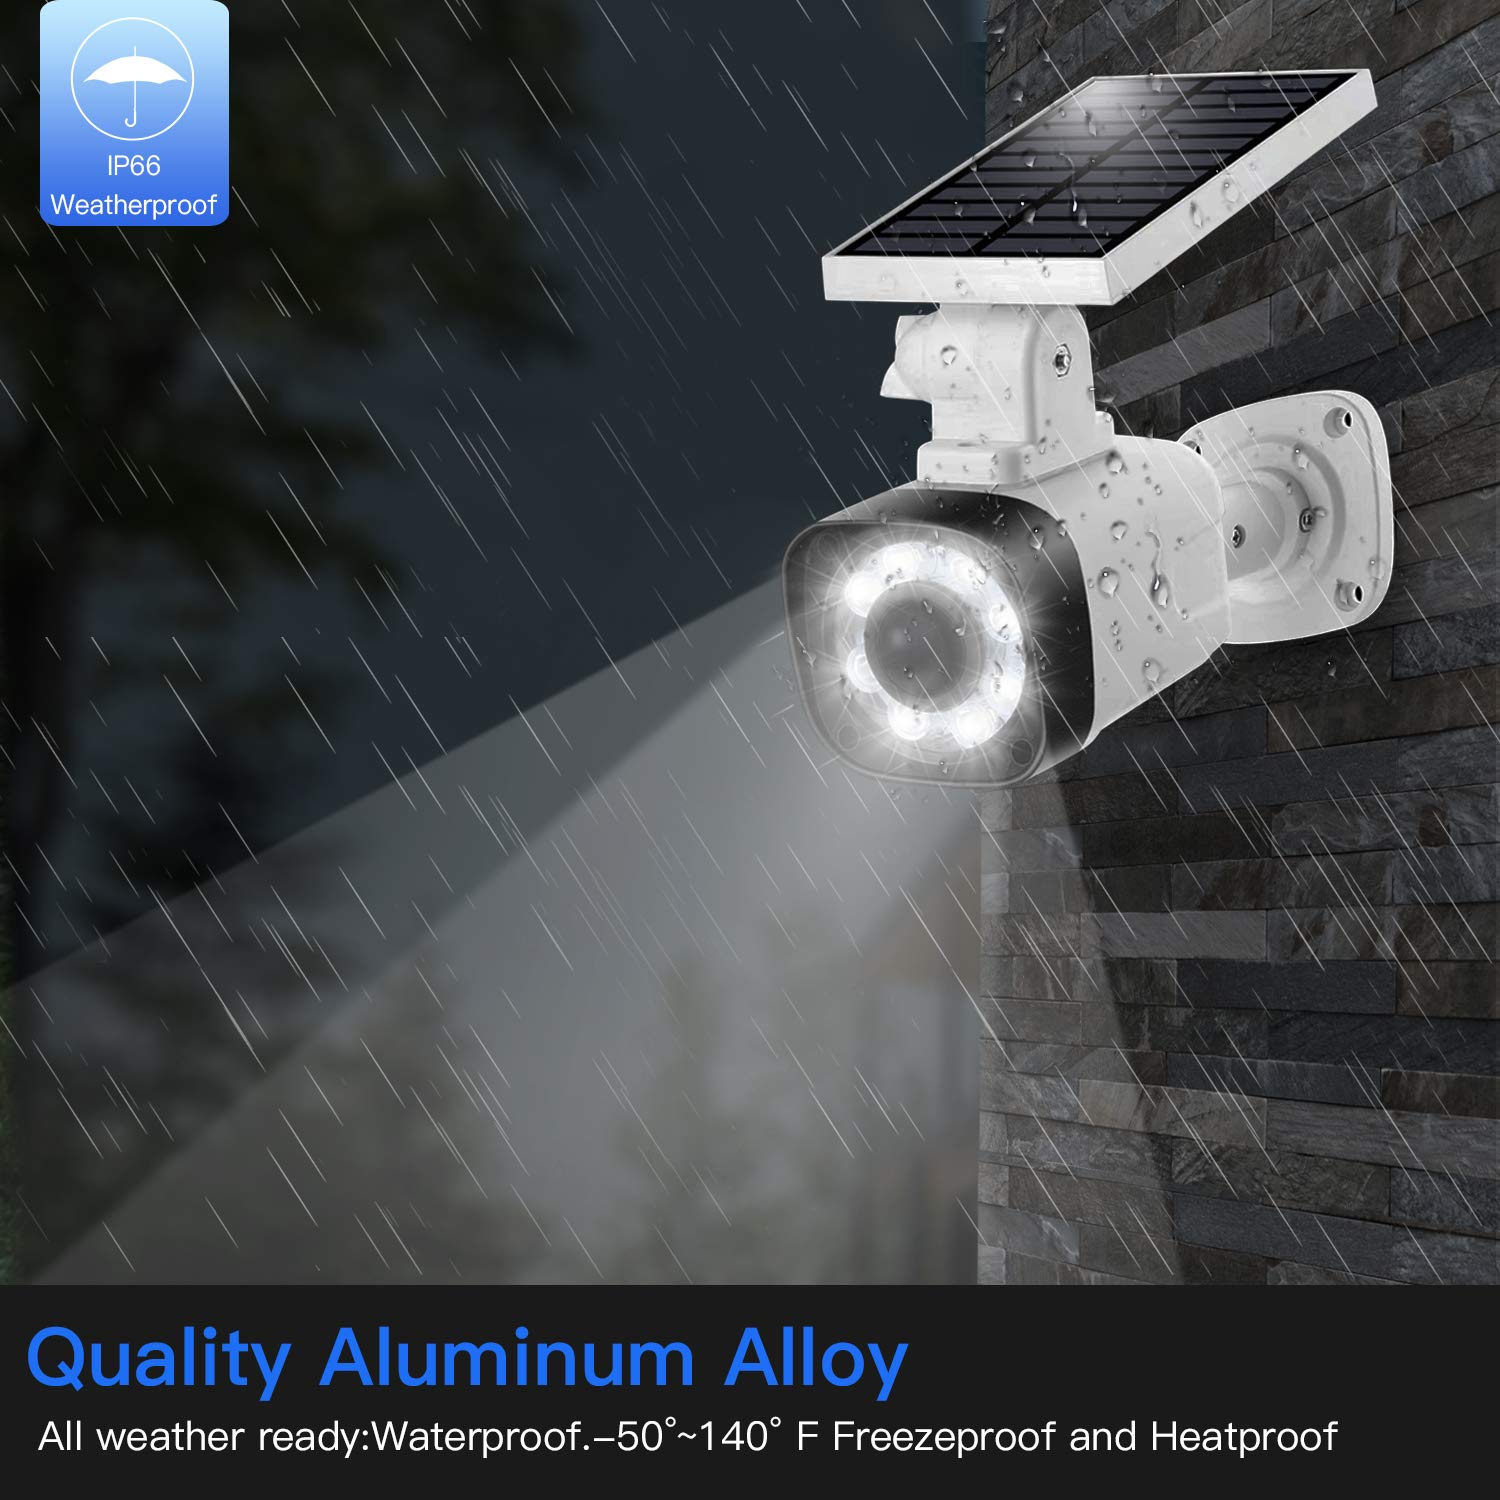 Solar Light Outdoor Motion Sensor - 3 Modes Selection, 20 in² Solar Panel IP66 Waterproof, 8 LED Spotlights w/800LM Security Flood Light for Garden Porch Driveway